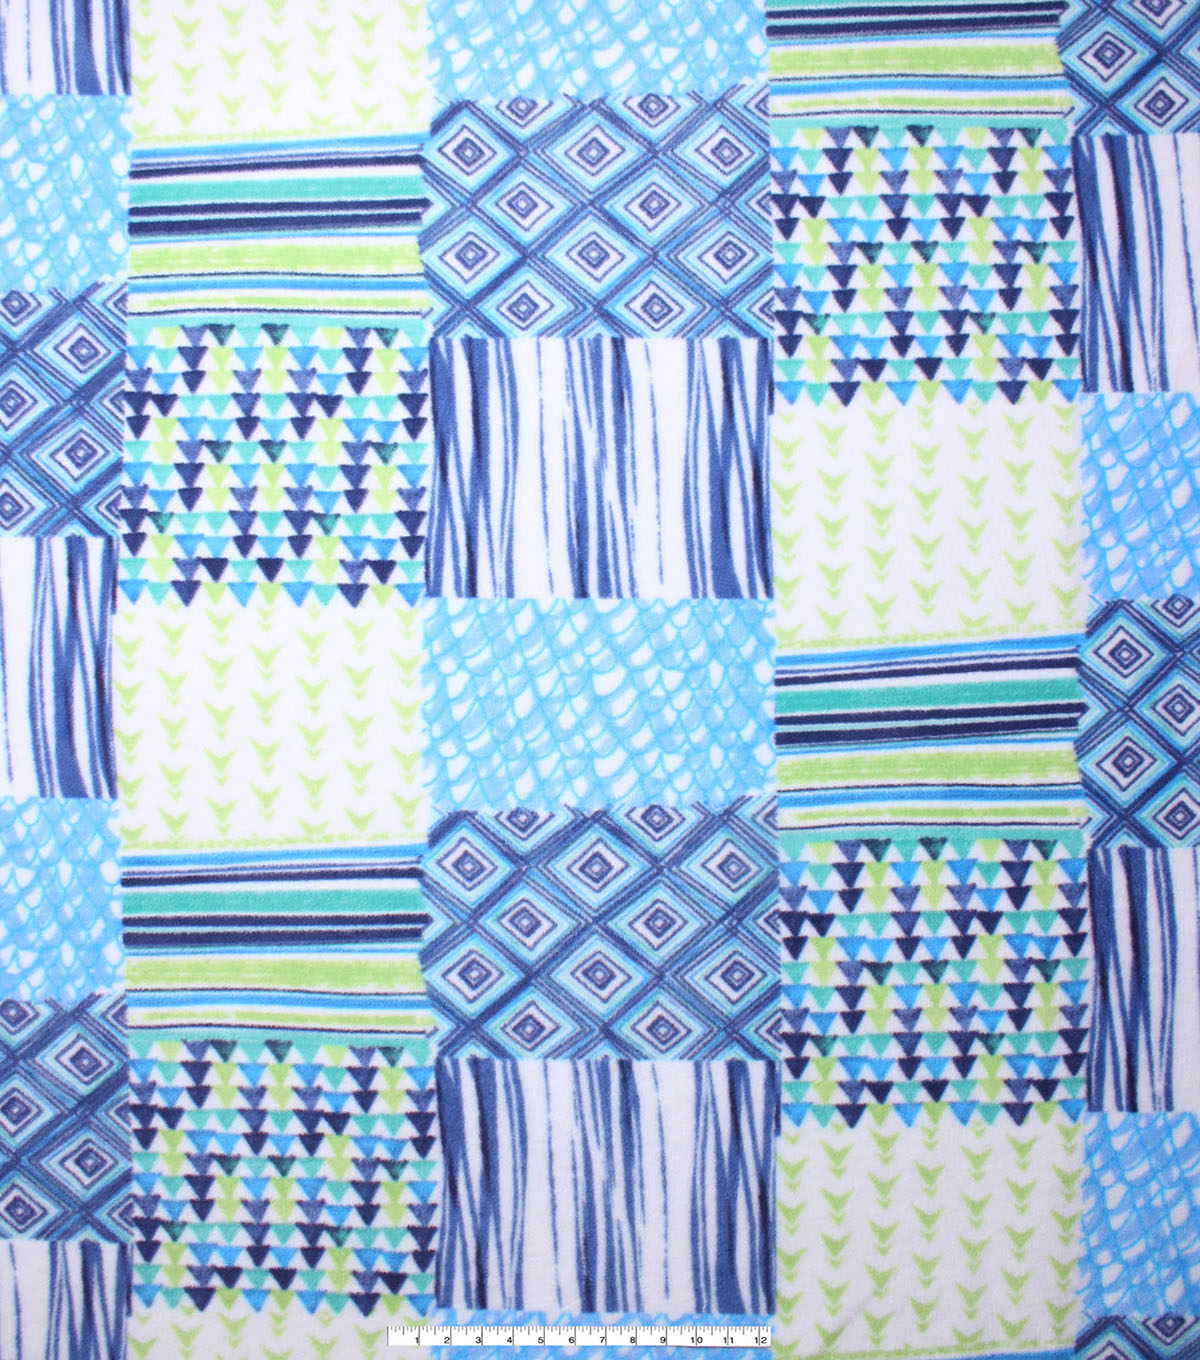 No Sew Fleece Throw Kit 48\u0027\u0027-Blue & Green Geometric Patch